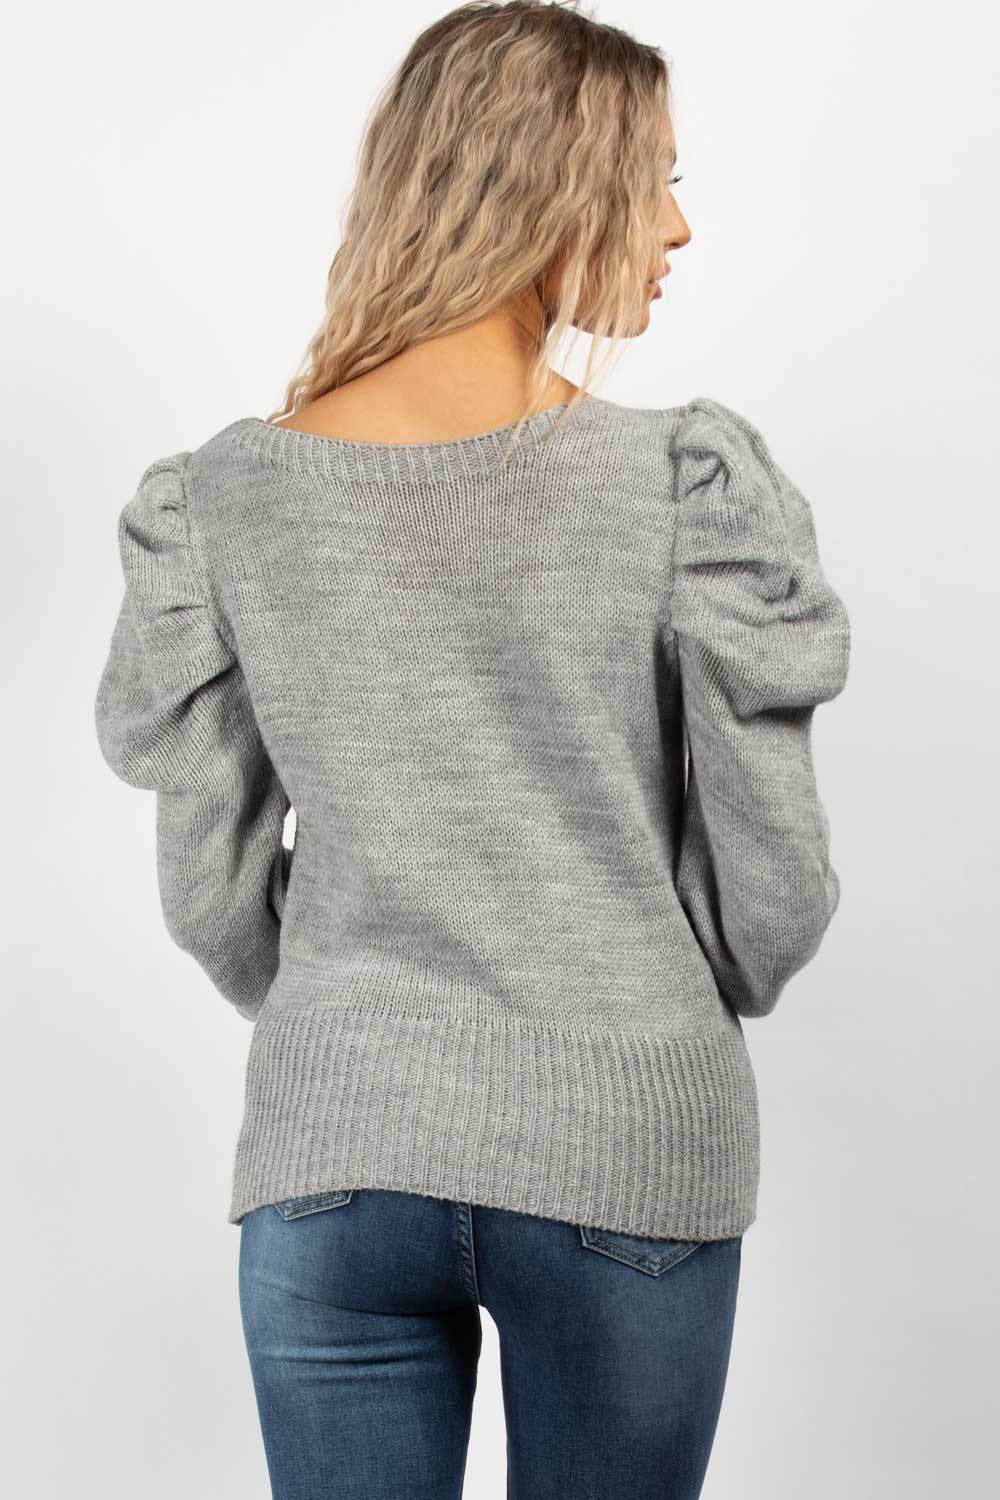 grey long sleeve jumper